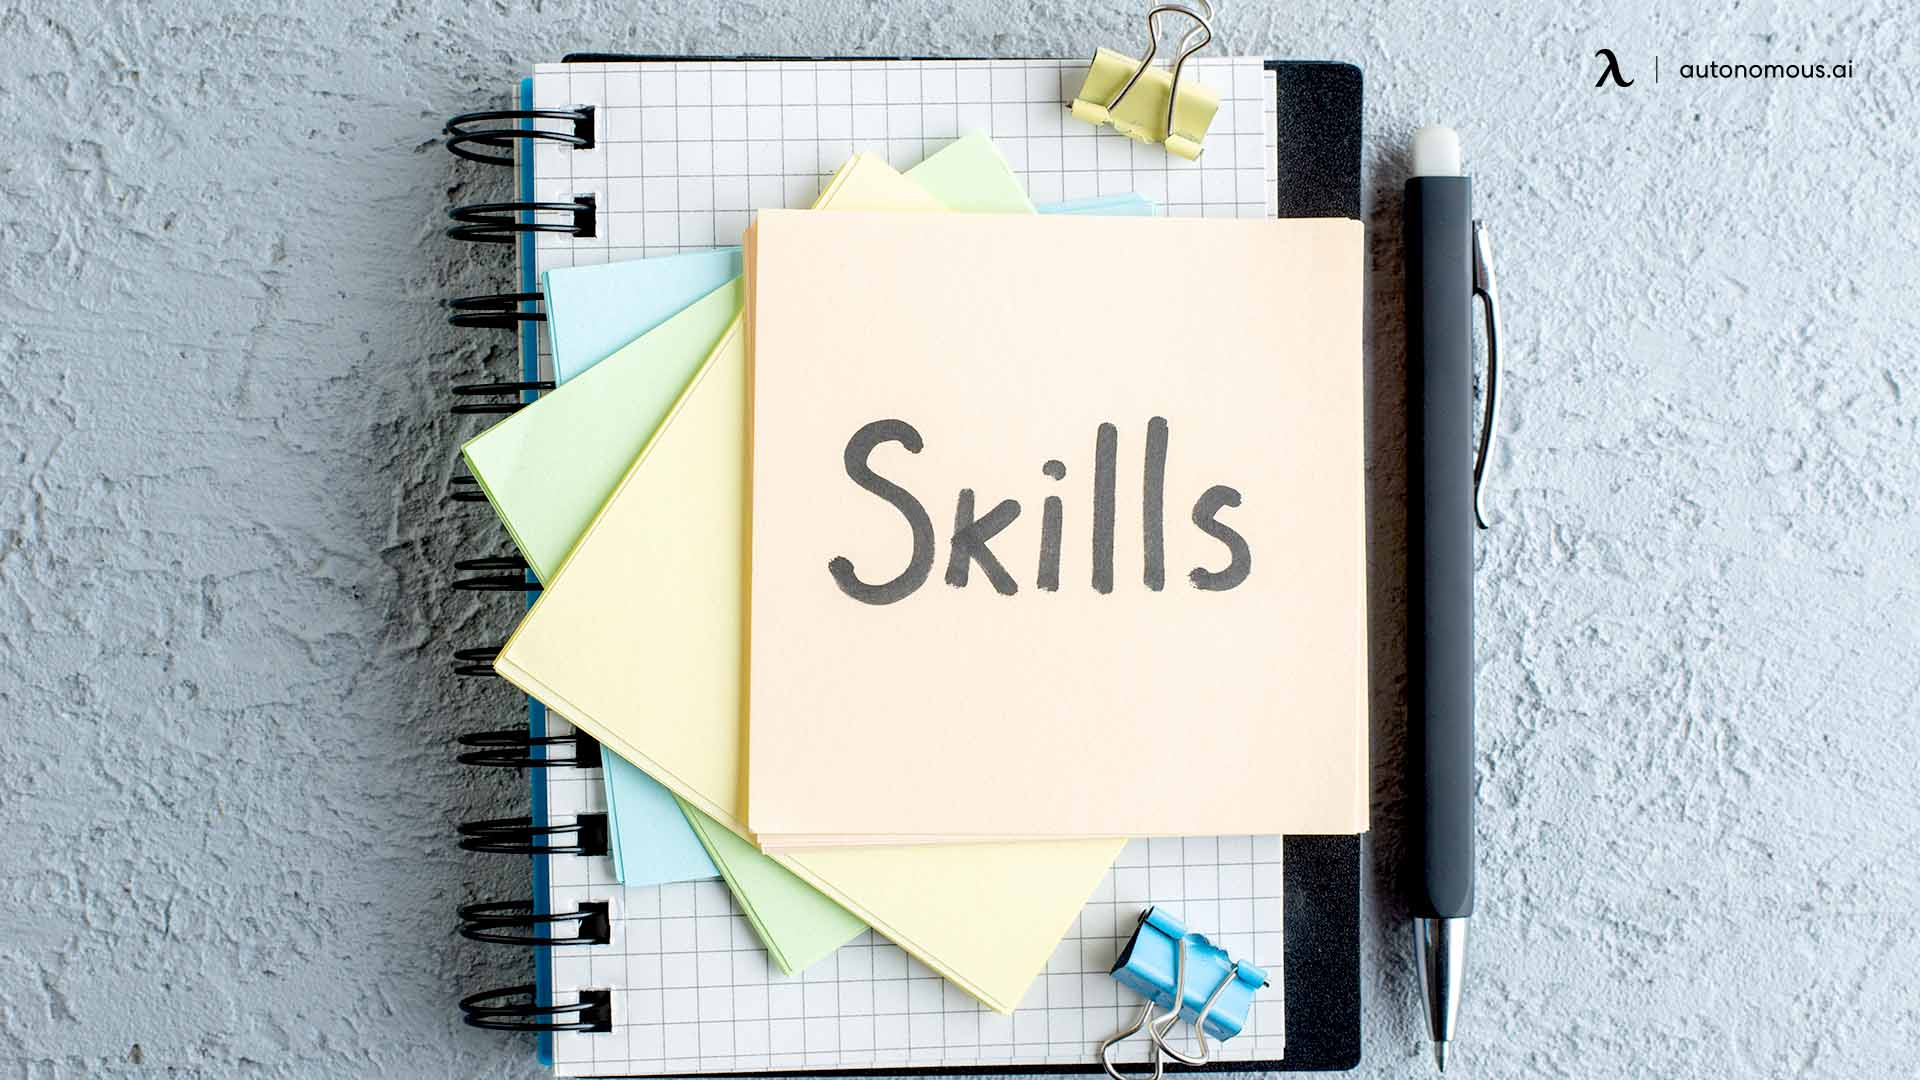 Identify Skills That Are in Demand in Your Field